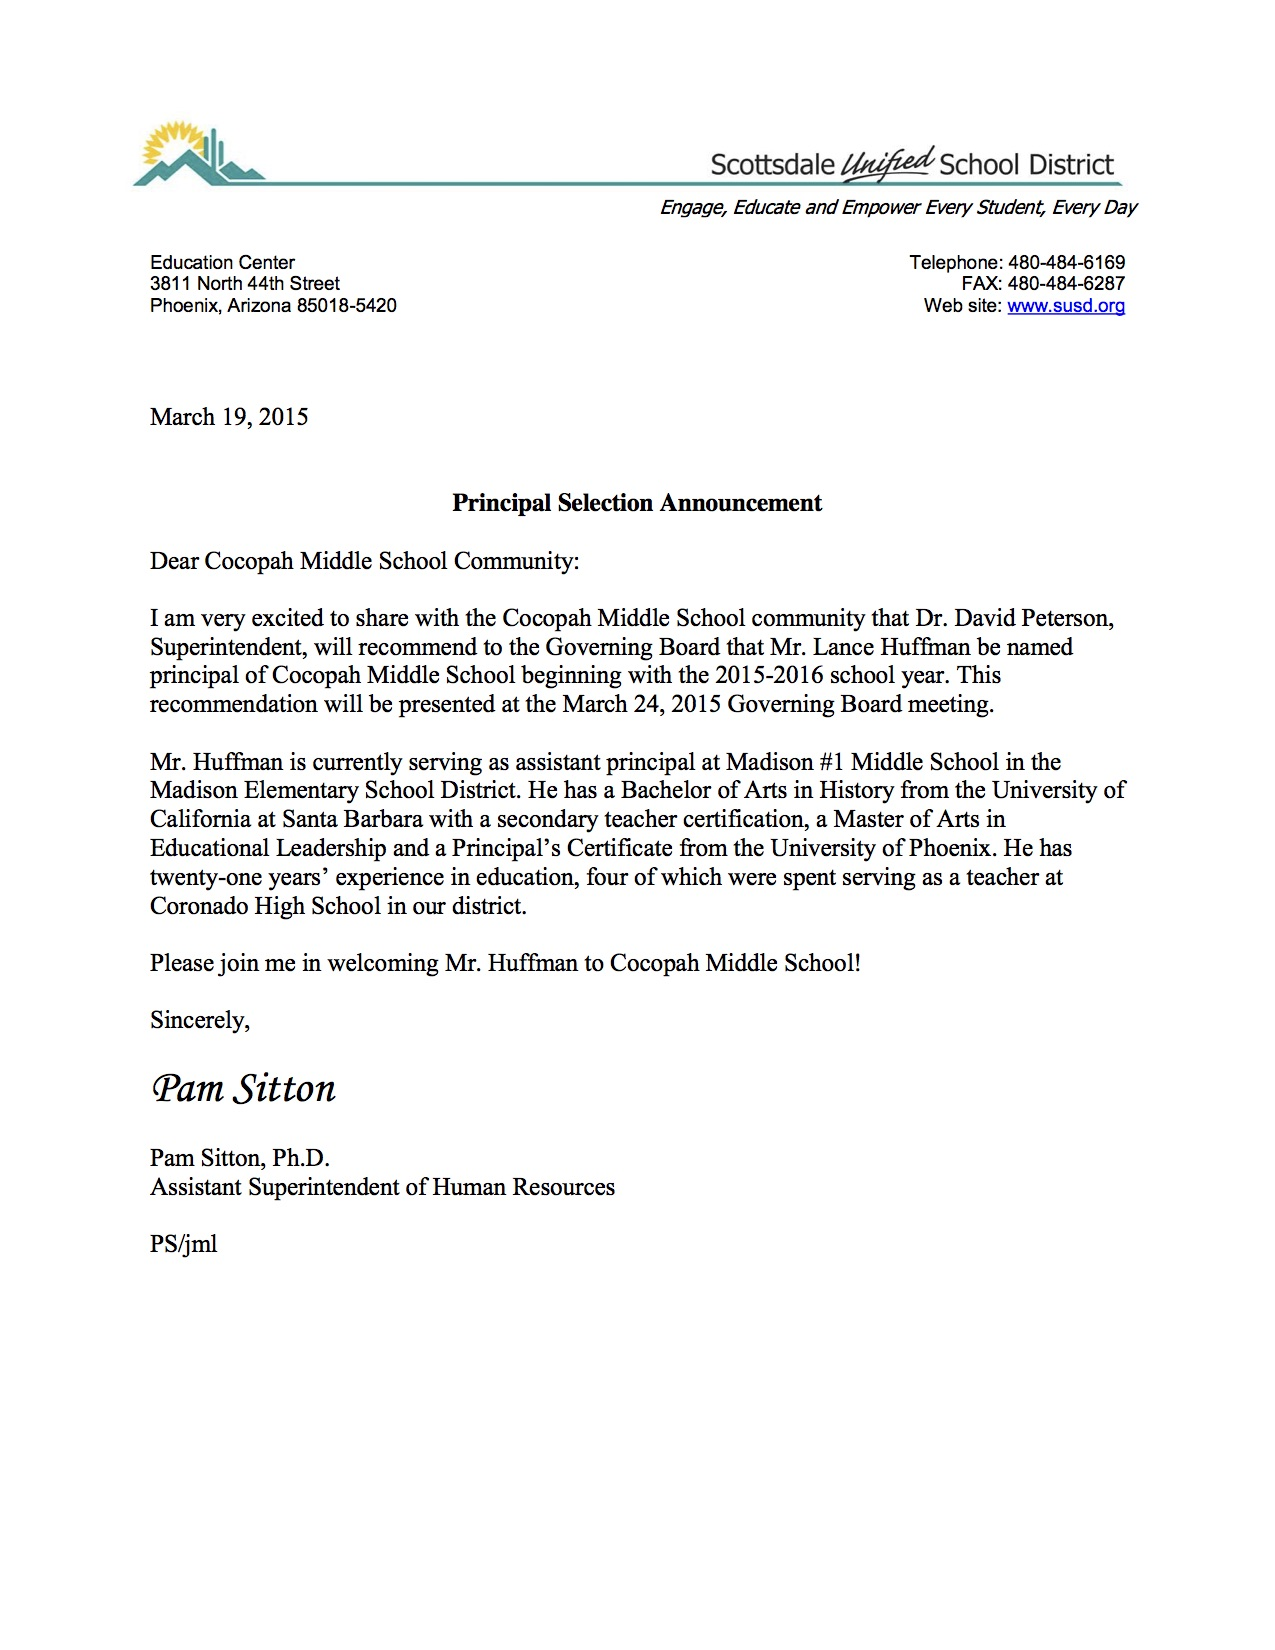 Announcement Letter re Cocopah Principal